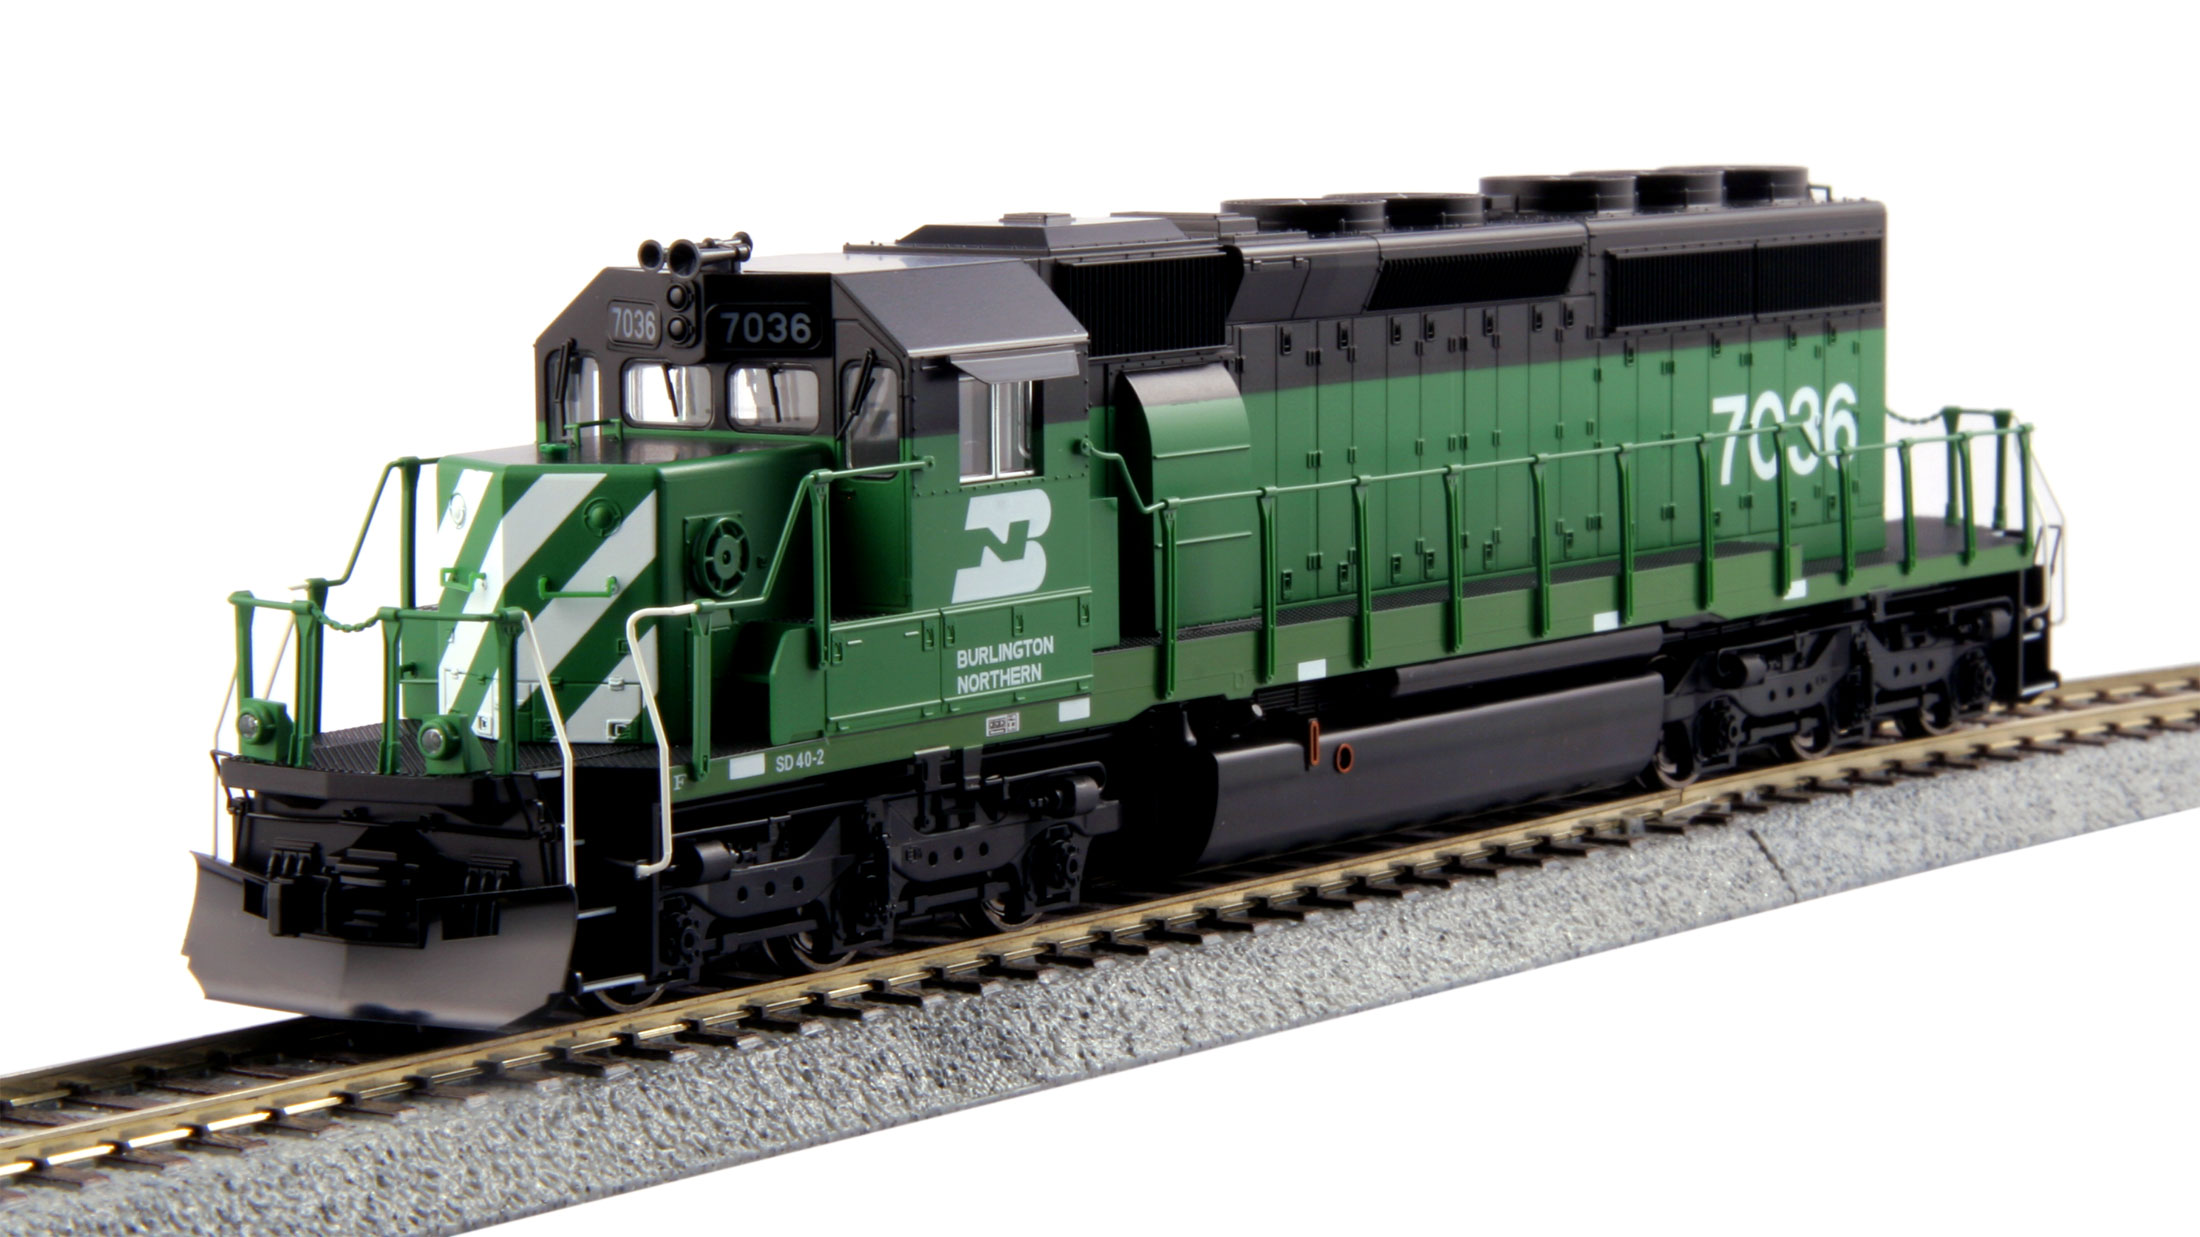 Kato 37-6604 HO Burlington Northern EMD SD40-2 Mid Cab Headlight #7036 This is a Kato 37-6604 HO Scale Burlington Northern EMD SD40-2 Mid Cab Headlight Standard #7036. Model Features: All handrails and grab irons are factory installed, making the model ready to go out of the box, Functional ditch lights that can be switched between alternating and steady modes on-the-fly, Great for pulling our Gunderson MAXI-IV double stack well cars, Locomotives feature directional Golden White LED headlights and illuminated preprinted numberboards, Sound friendly construction with a speaker housing in the fuel tank and Ditch lights can be synchronized with horn or bell functions with the installation of an 8-pin sound decoder.Condition: Factory New (C-9All original; unused; factory rubs and evidence of handling, shipping and factory test run.Standards for all toy train related accessory items apply to the visual appearance of the item and do not consider the operating functionality of the equipment.Condition and Grading Standards are subjective, at best, and are intended to act as a guide. )Operational Status: FunctionalThis item is brand new from the factory.Original Box: Yes (P-9May have store stamps and price tags. Has inner liners.)Manufacturer: KatoModel Number: 37-6604Road Name: Burlington NorthernMSRP: $185.00Scale/Era: HO ModernModel Type: Diesel LocoAvailability: Ships in 1 Business Day!The Trainz SKU for this item is P12163211. Track: 12163211 - No Location Assigned - 001 - TrainzAuctionGroup00UNK - TDIDUNK